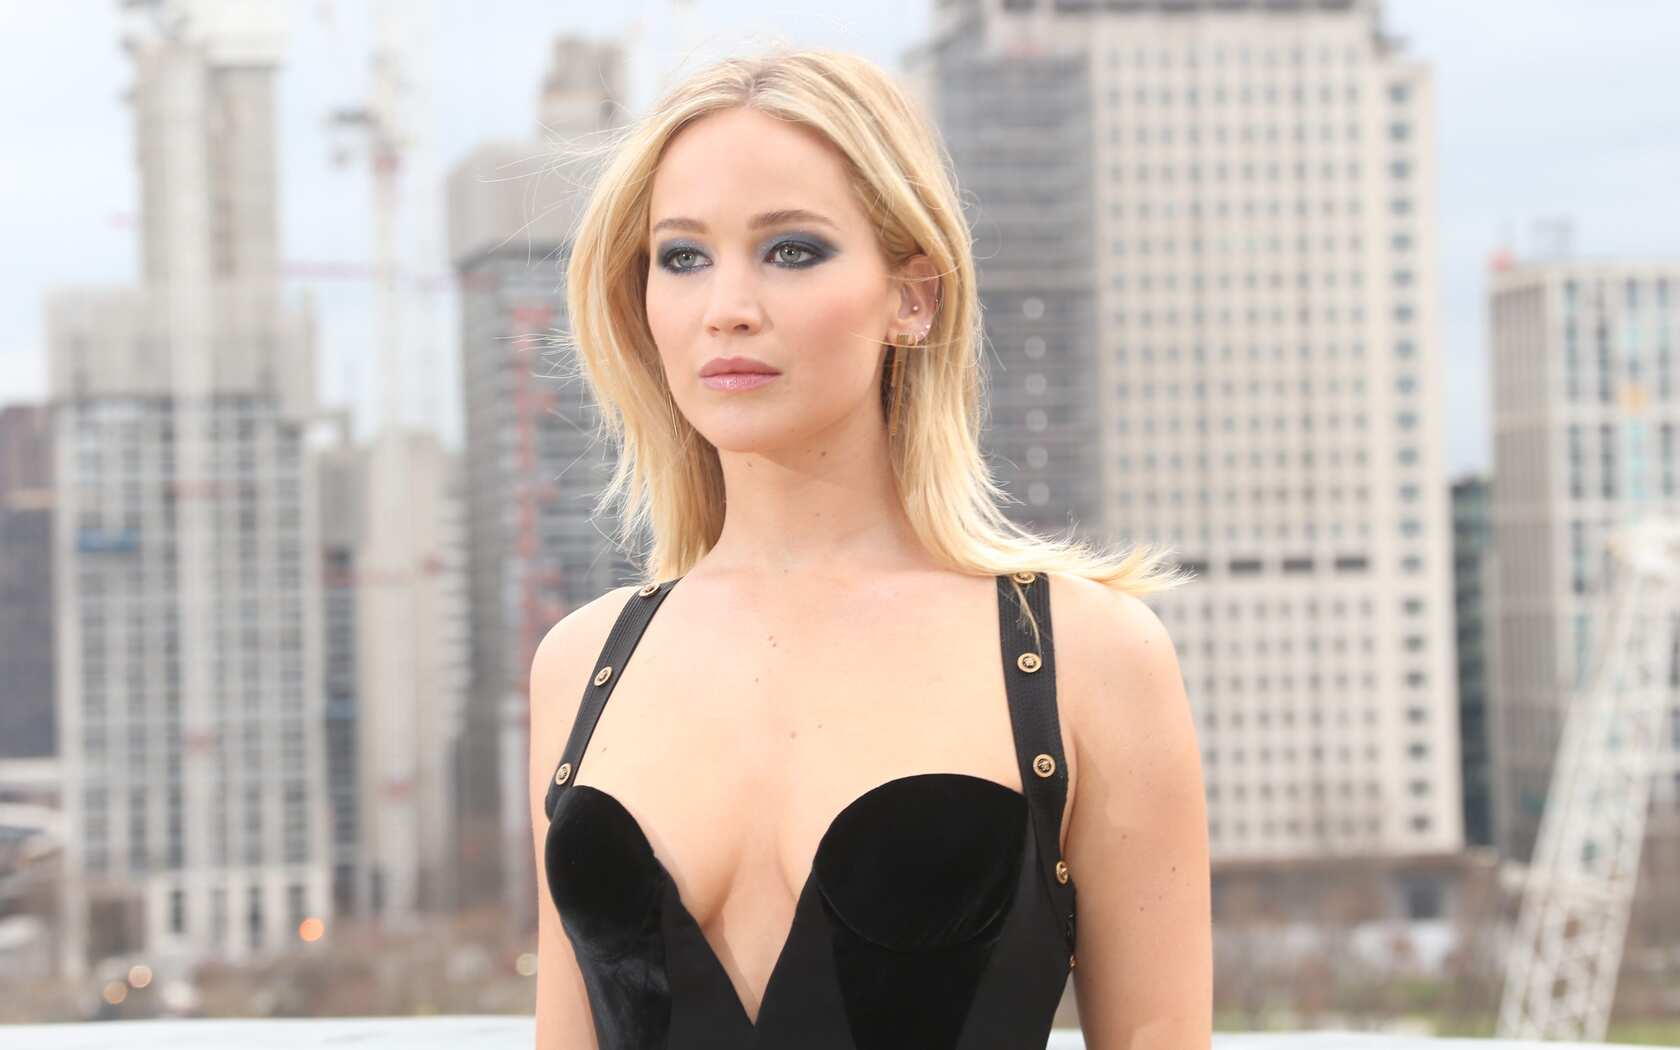 jennifer-lawrence-4k-2018-y9.jpg